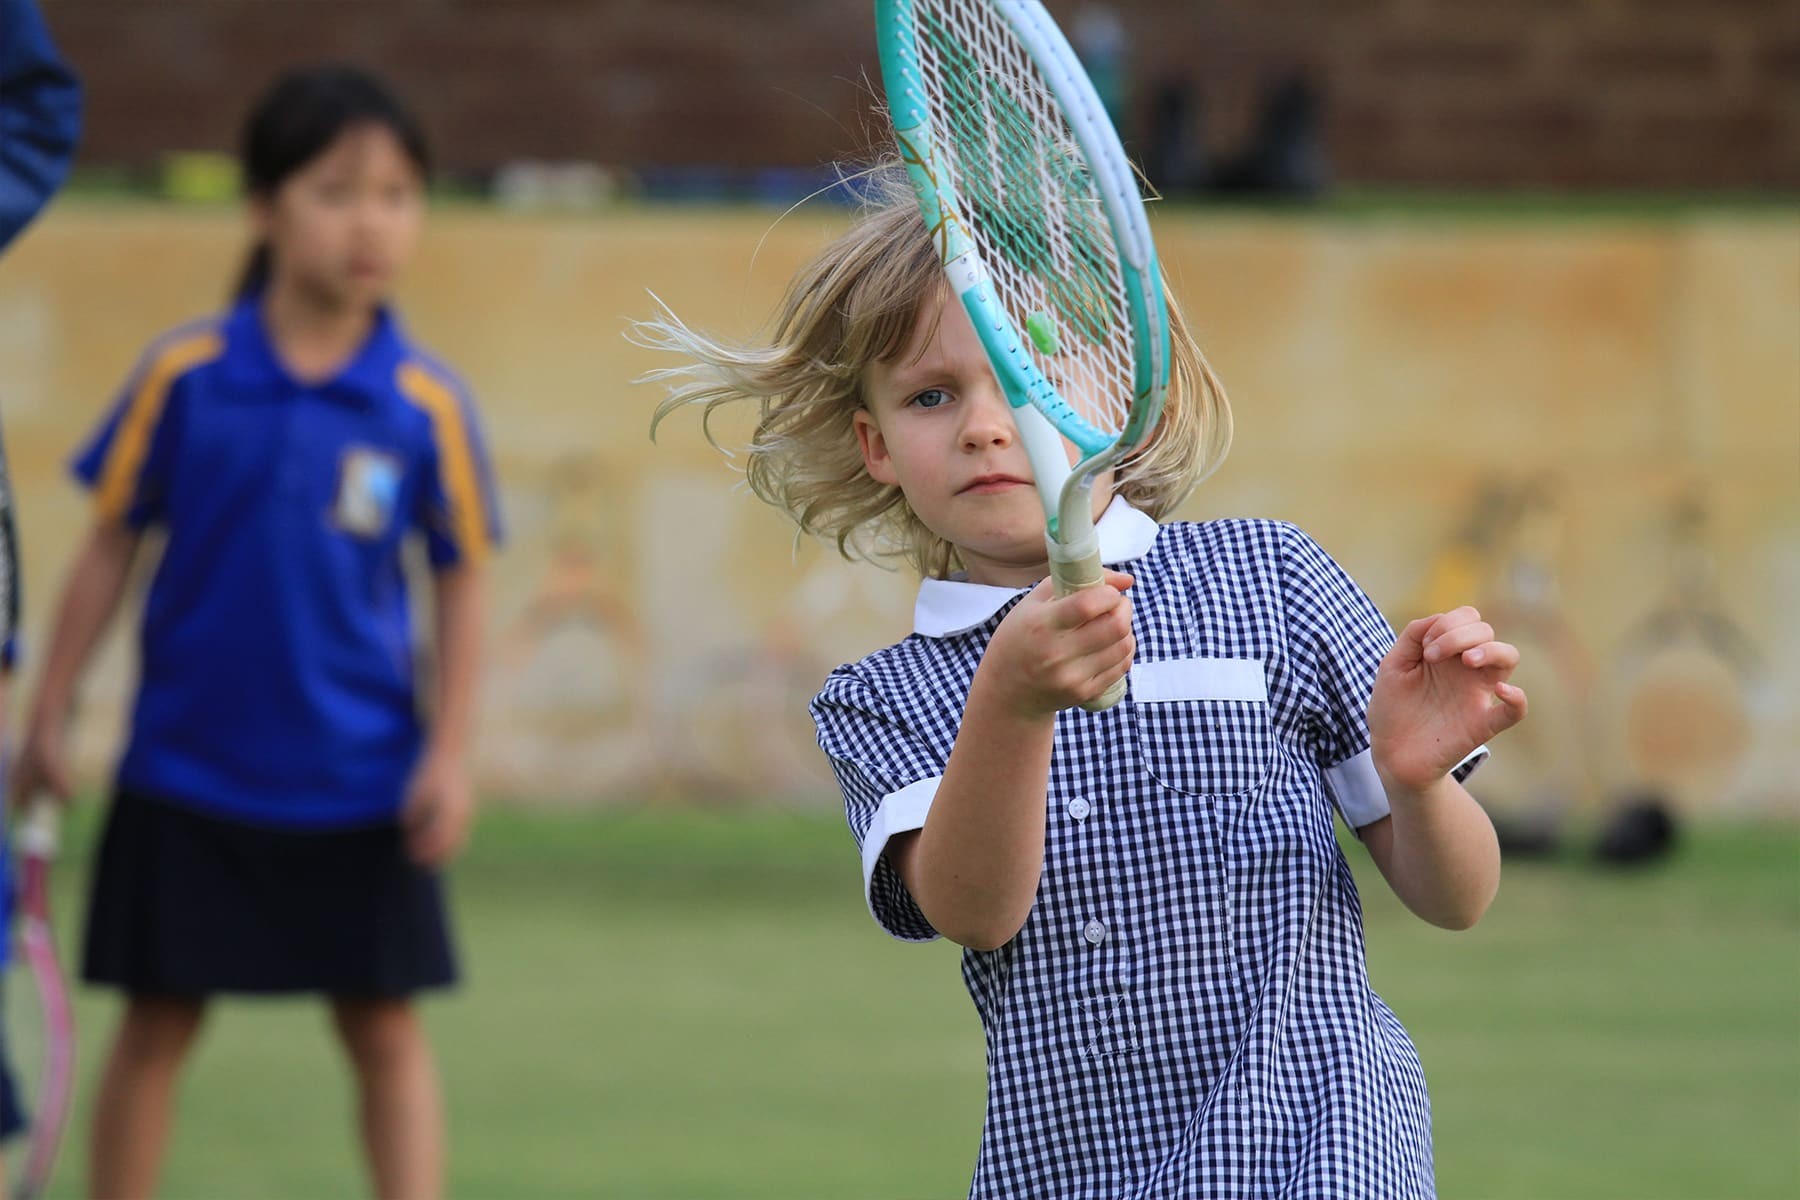 https://www.tennisexcellence.com.au/wp-content/uploads/2020/01/Programs_School-Programs_About.jpg